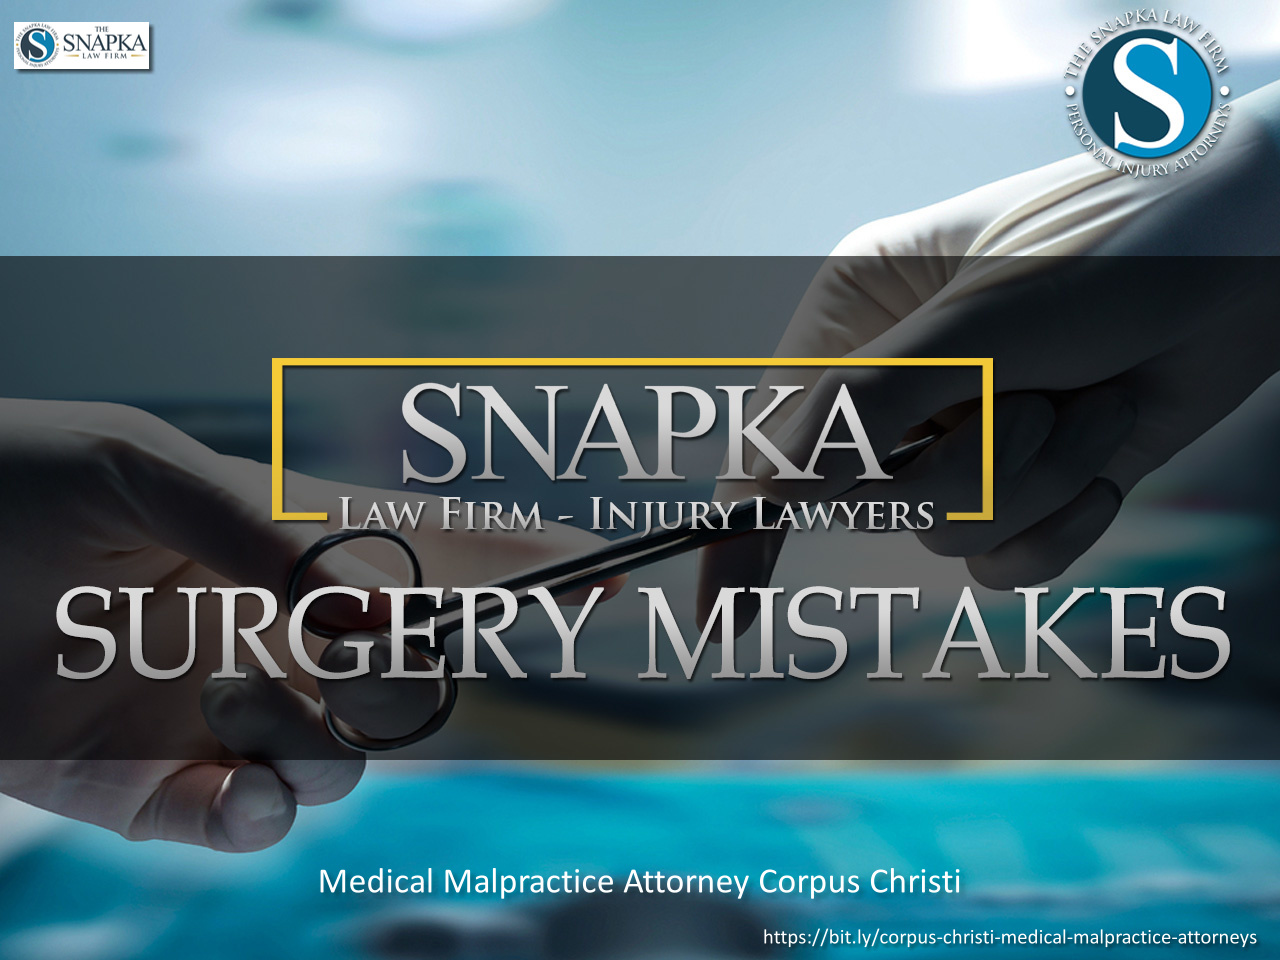 The Snapka Law Firm, Injury Lawyers Outlines the Benefits of Hiring Experienced Medical Malpractice Lawyers